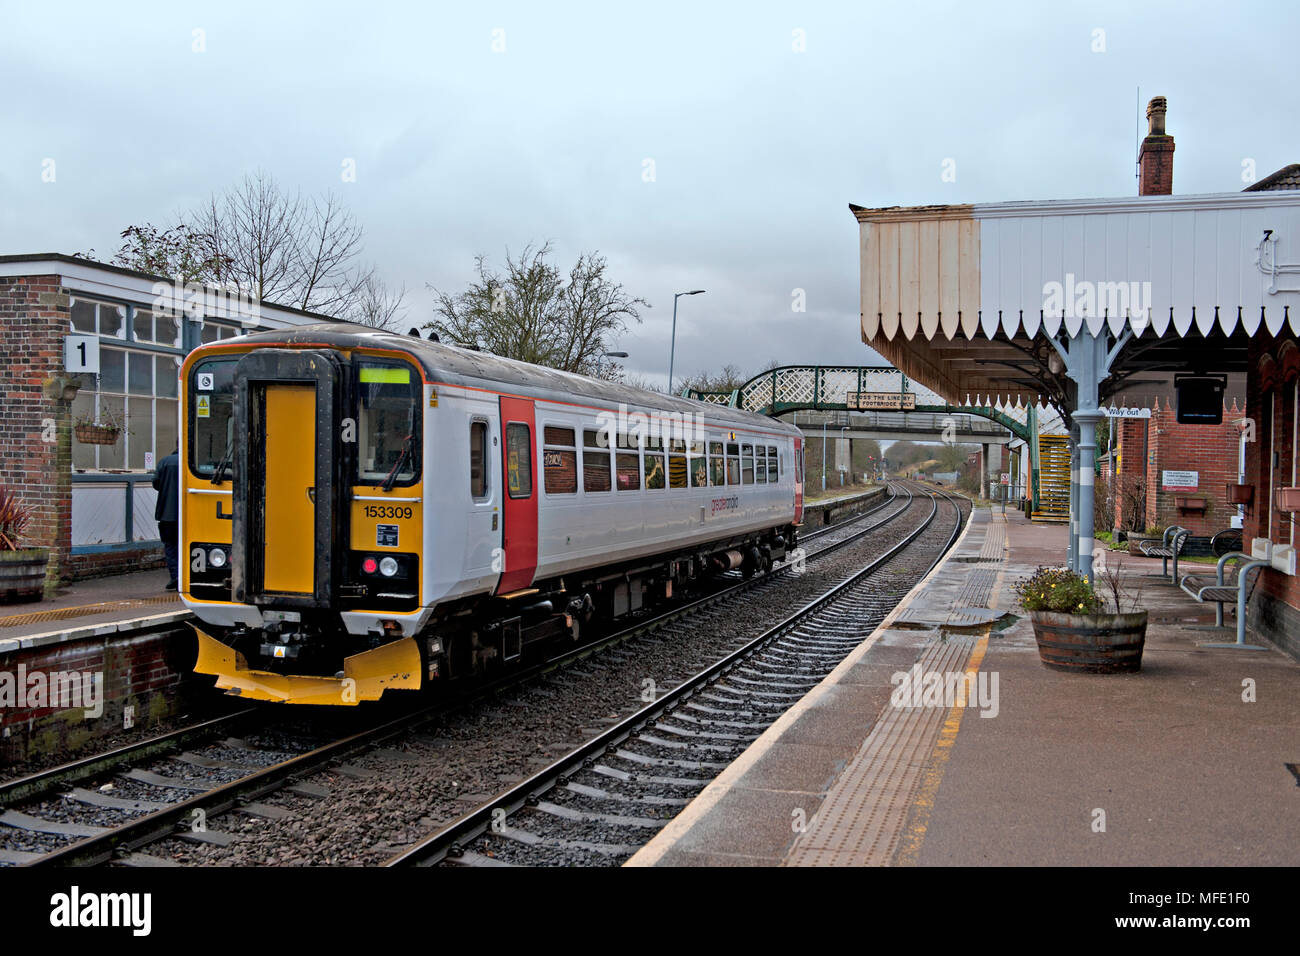 Acle railway station on the Wherry lines between Norwich and Great Yarmouth in Norfolk, UK - Stock Image